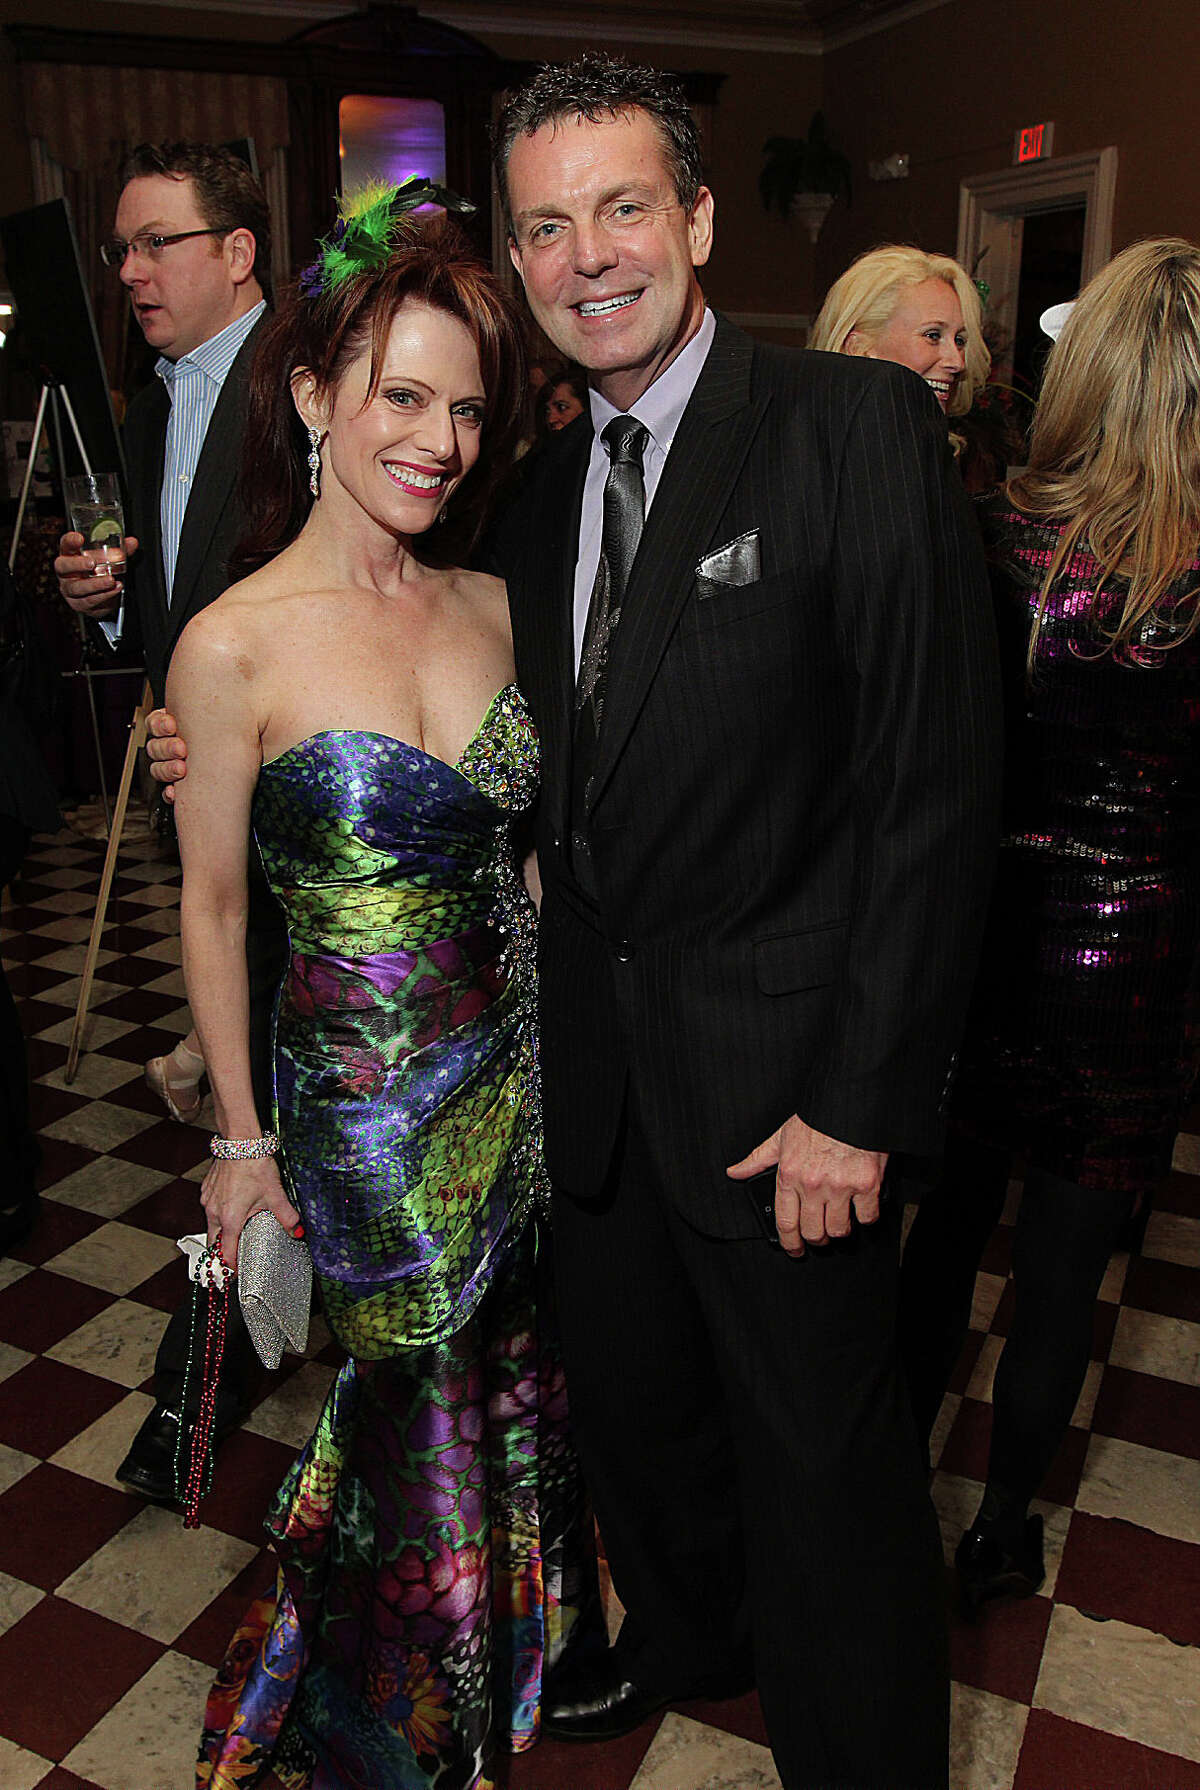 Were you Seen at Hattie's Mardi Gras Celebration, a benefit for the Saratoga Performing Arts Center and its New York City Ballet residency, at the Canfield Casino in Saratoga Springs on Saturday, Jan. 19, 2013?